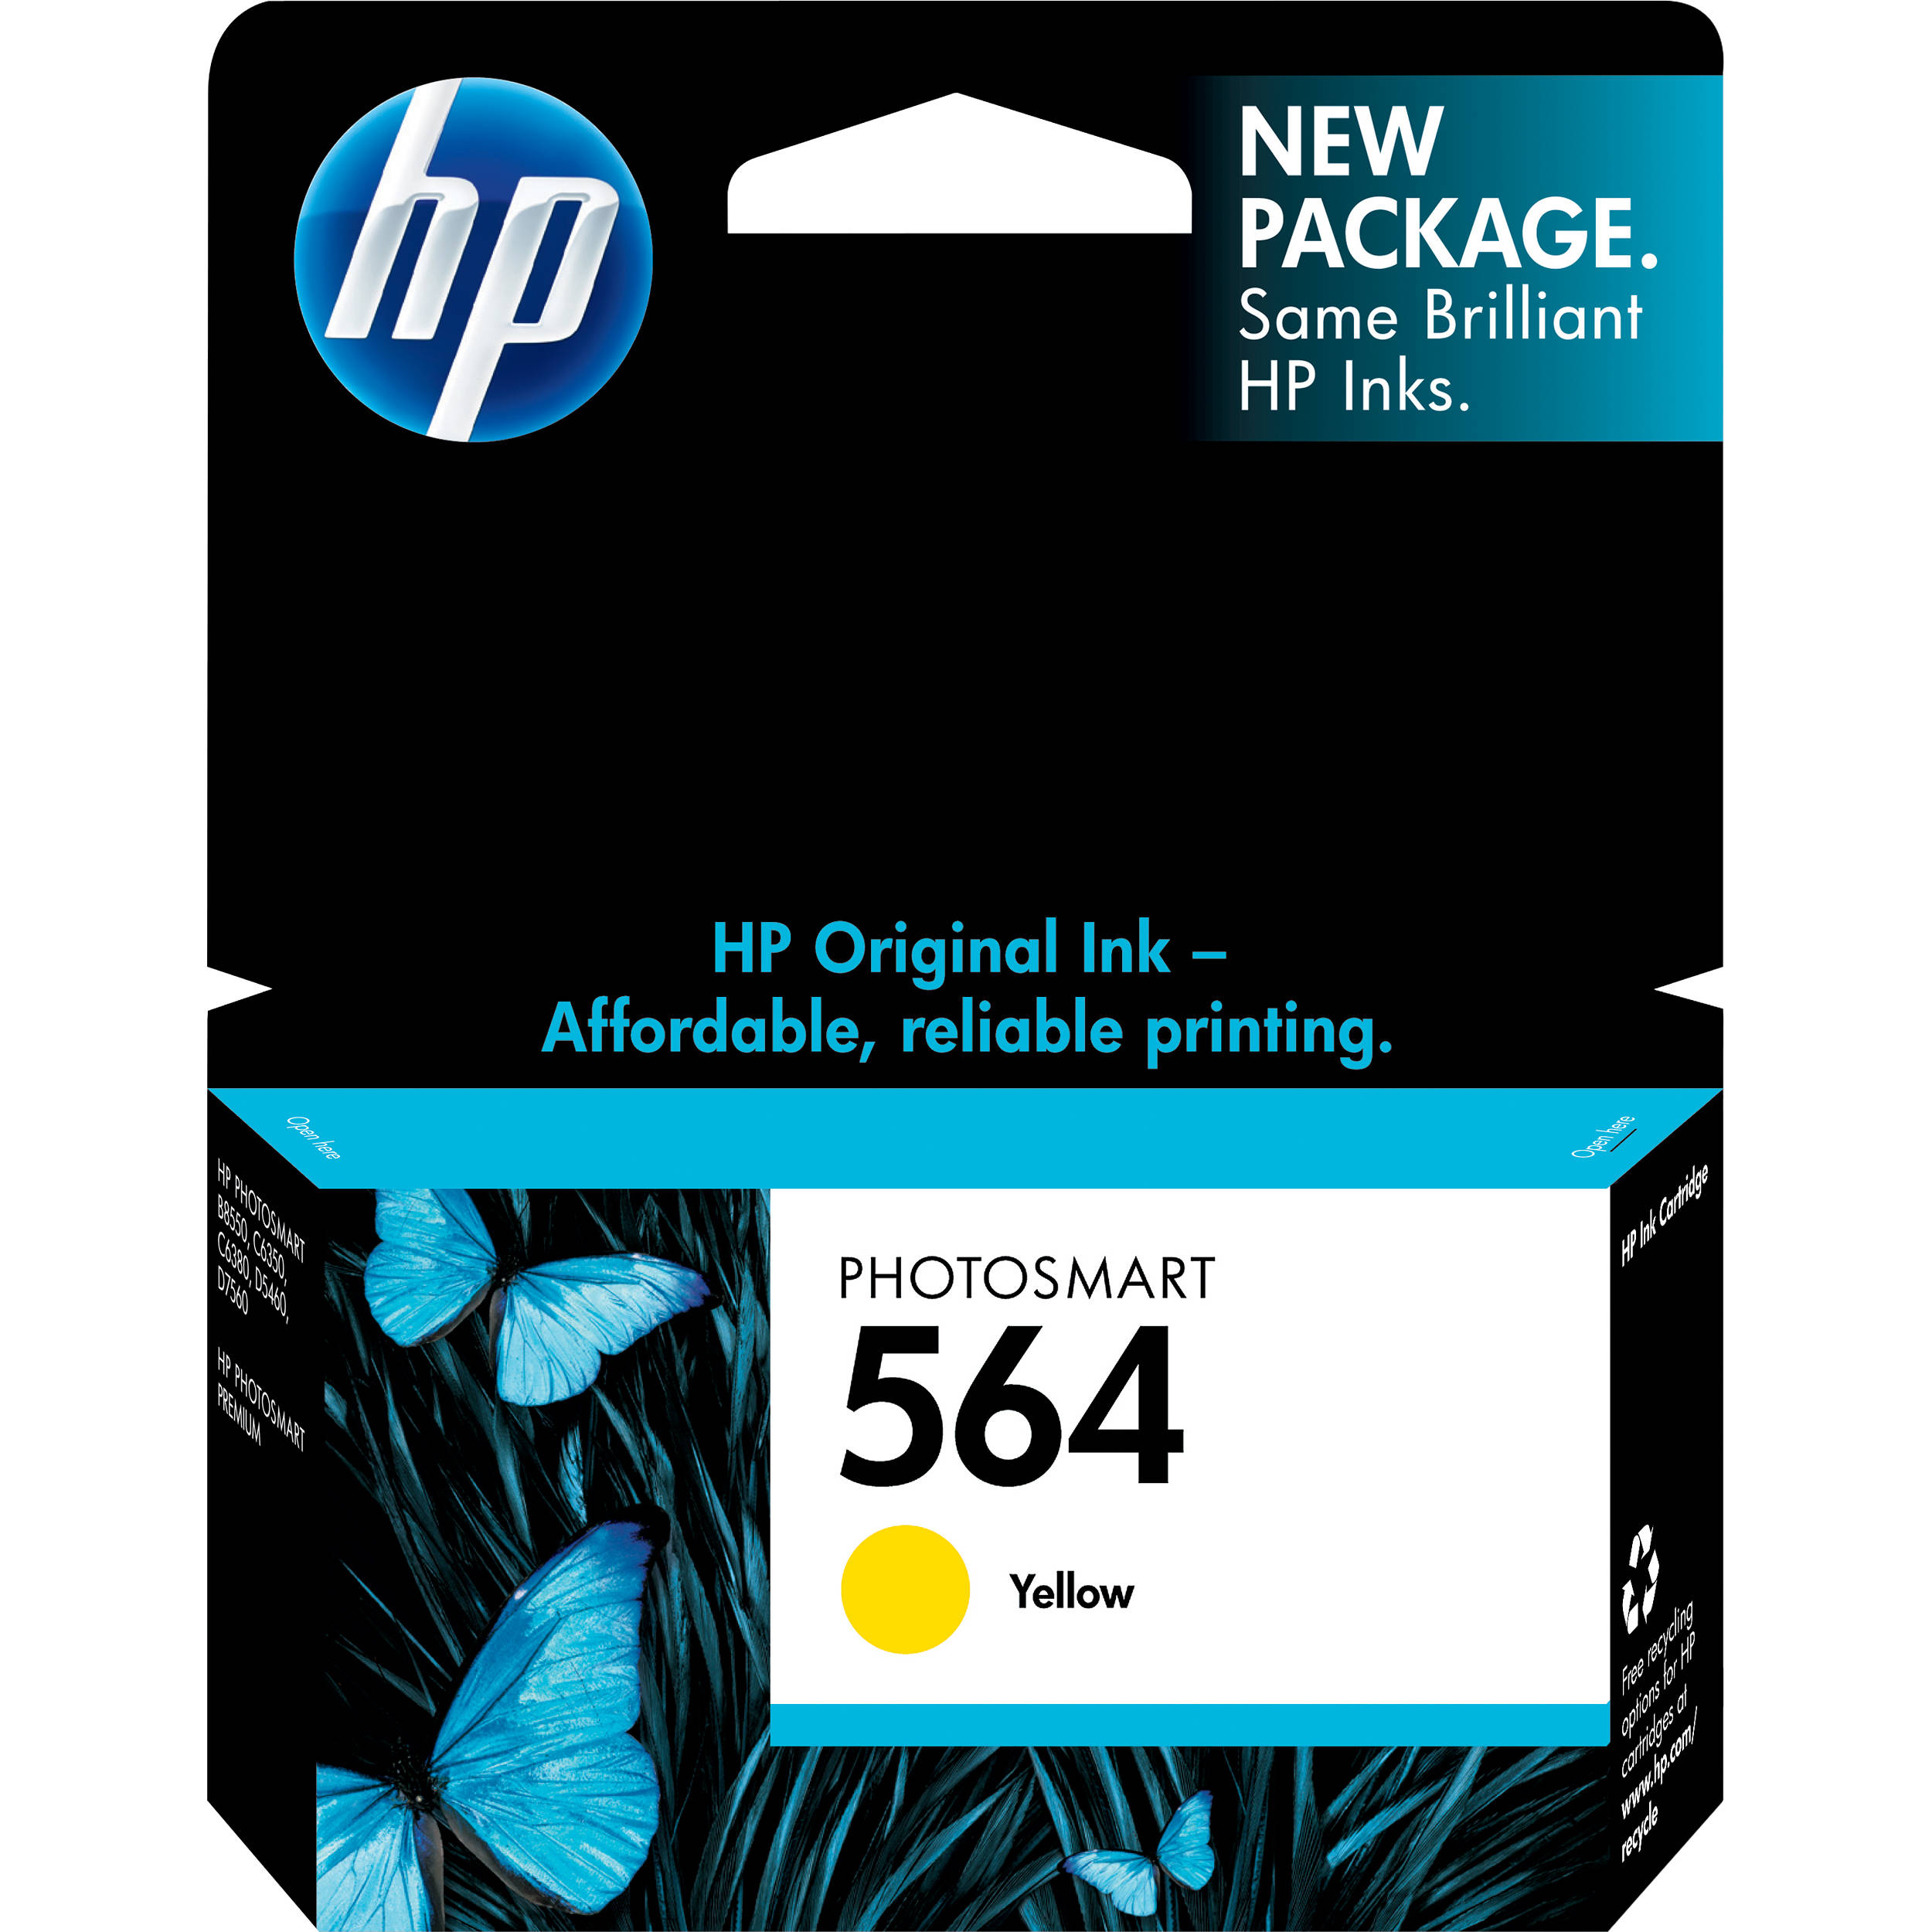 Enticing Hp Standard Yellow Ink Cartridge Hp Standard Yellow Ink Cartridge Photo Video Hp Printers That Use 564 Ink Staples Hp Printer That Uses 564 Ink dpreview Hp Printers That Use 564 Ink